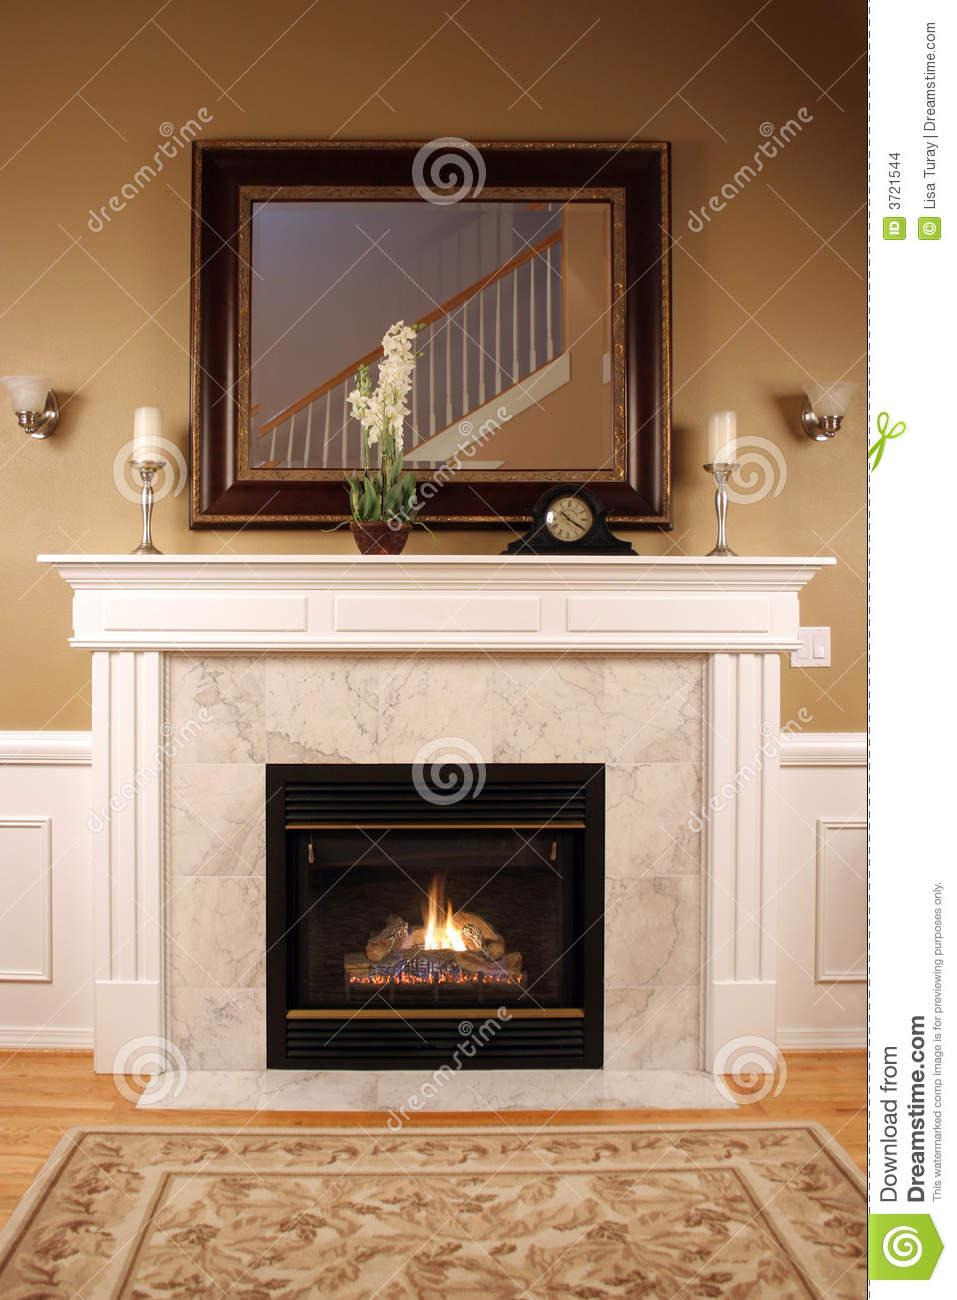 Warm And Cozy Fireplace Stock Images  Image 3721544